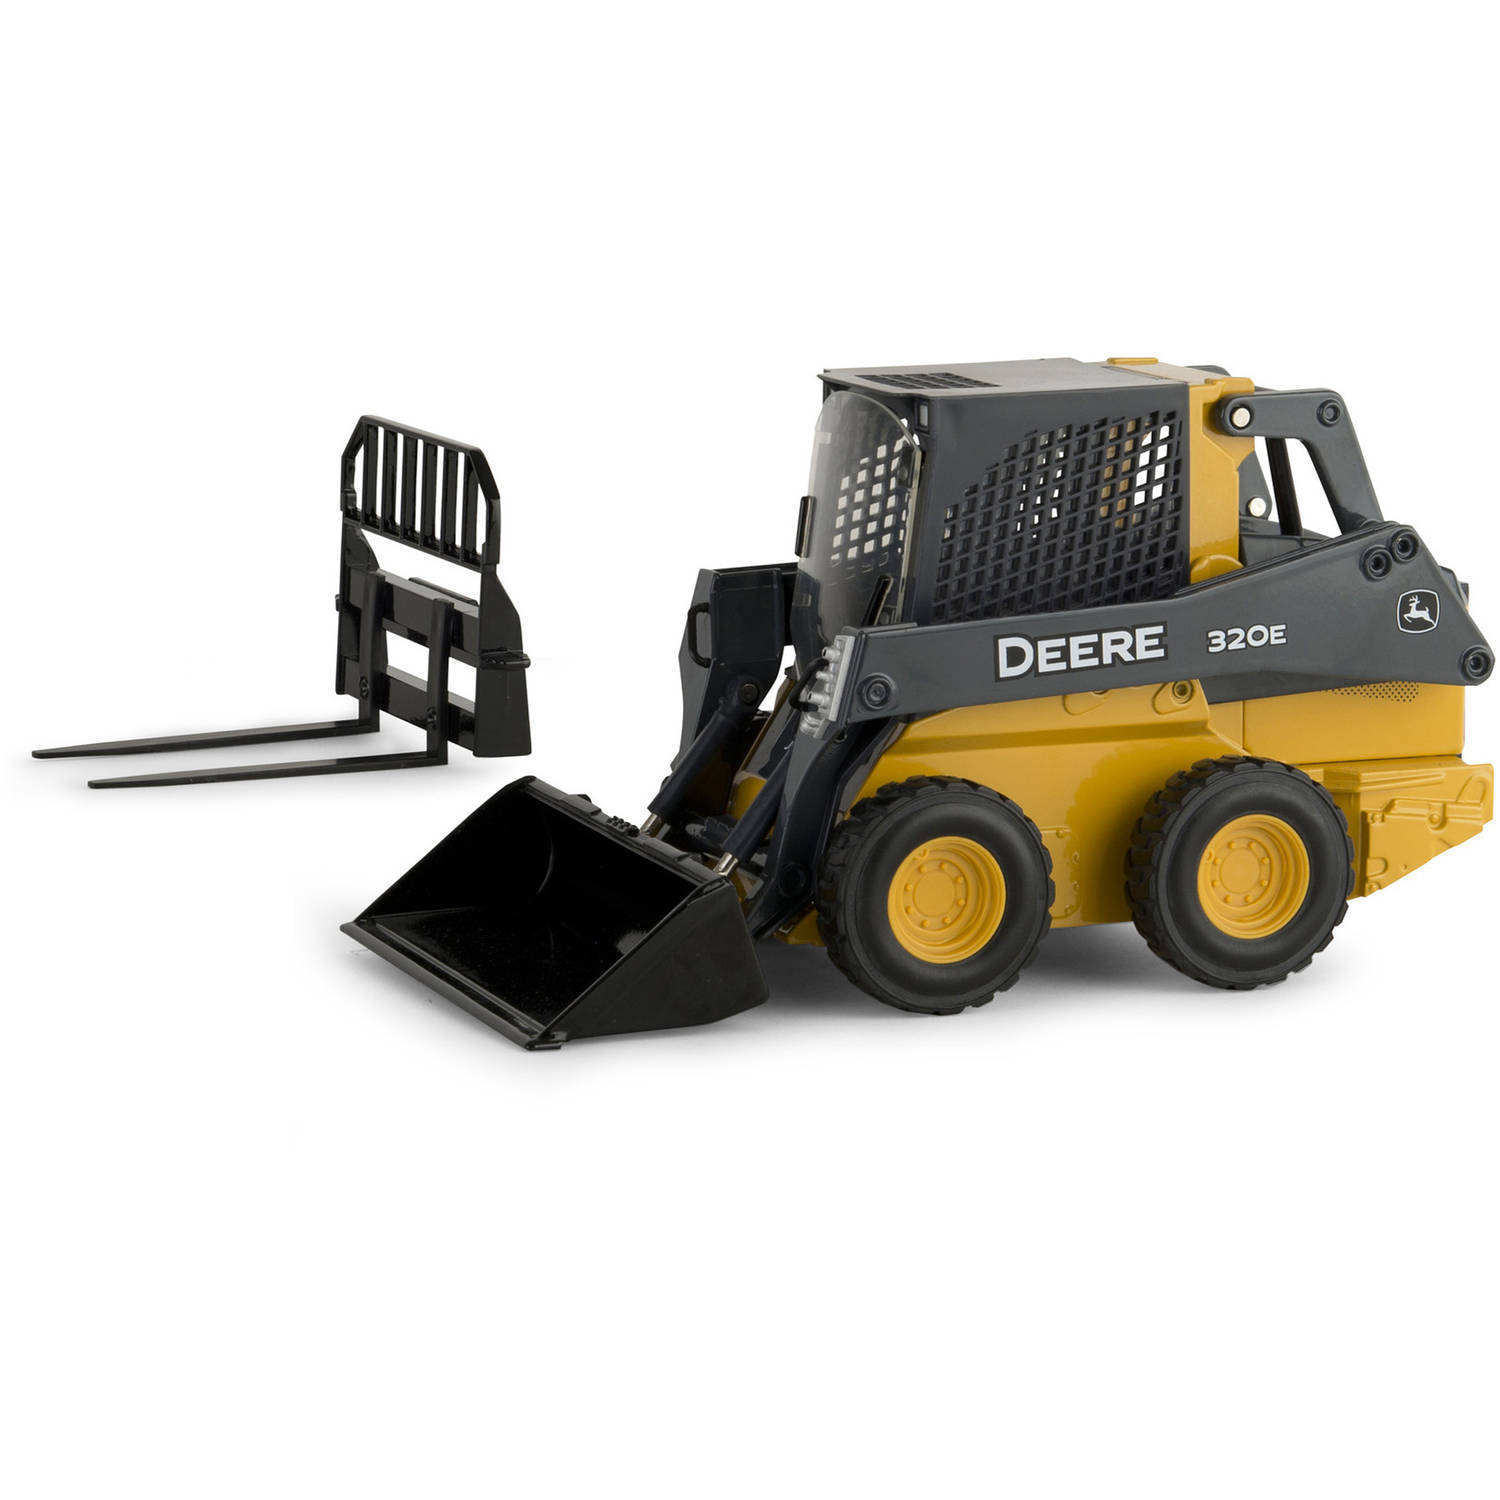 ERTL 1/16 Scale John Deere 320E Skid Steer from the Prestige Collection